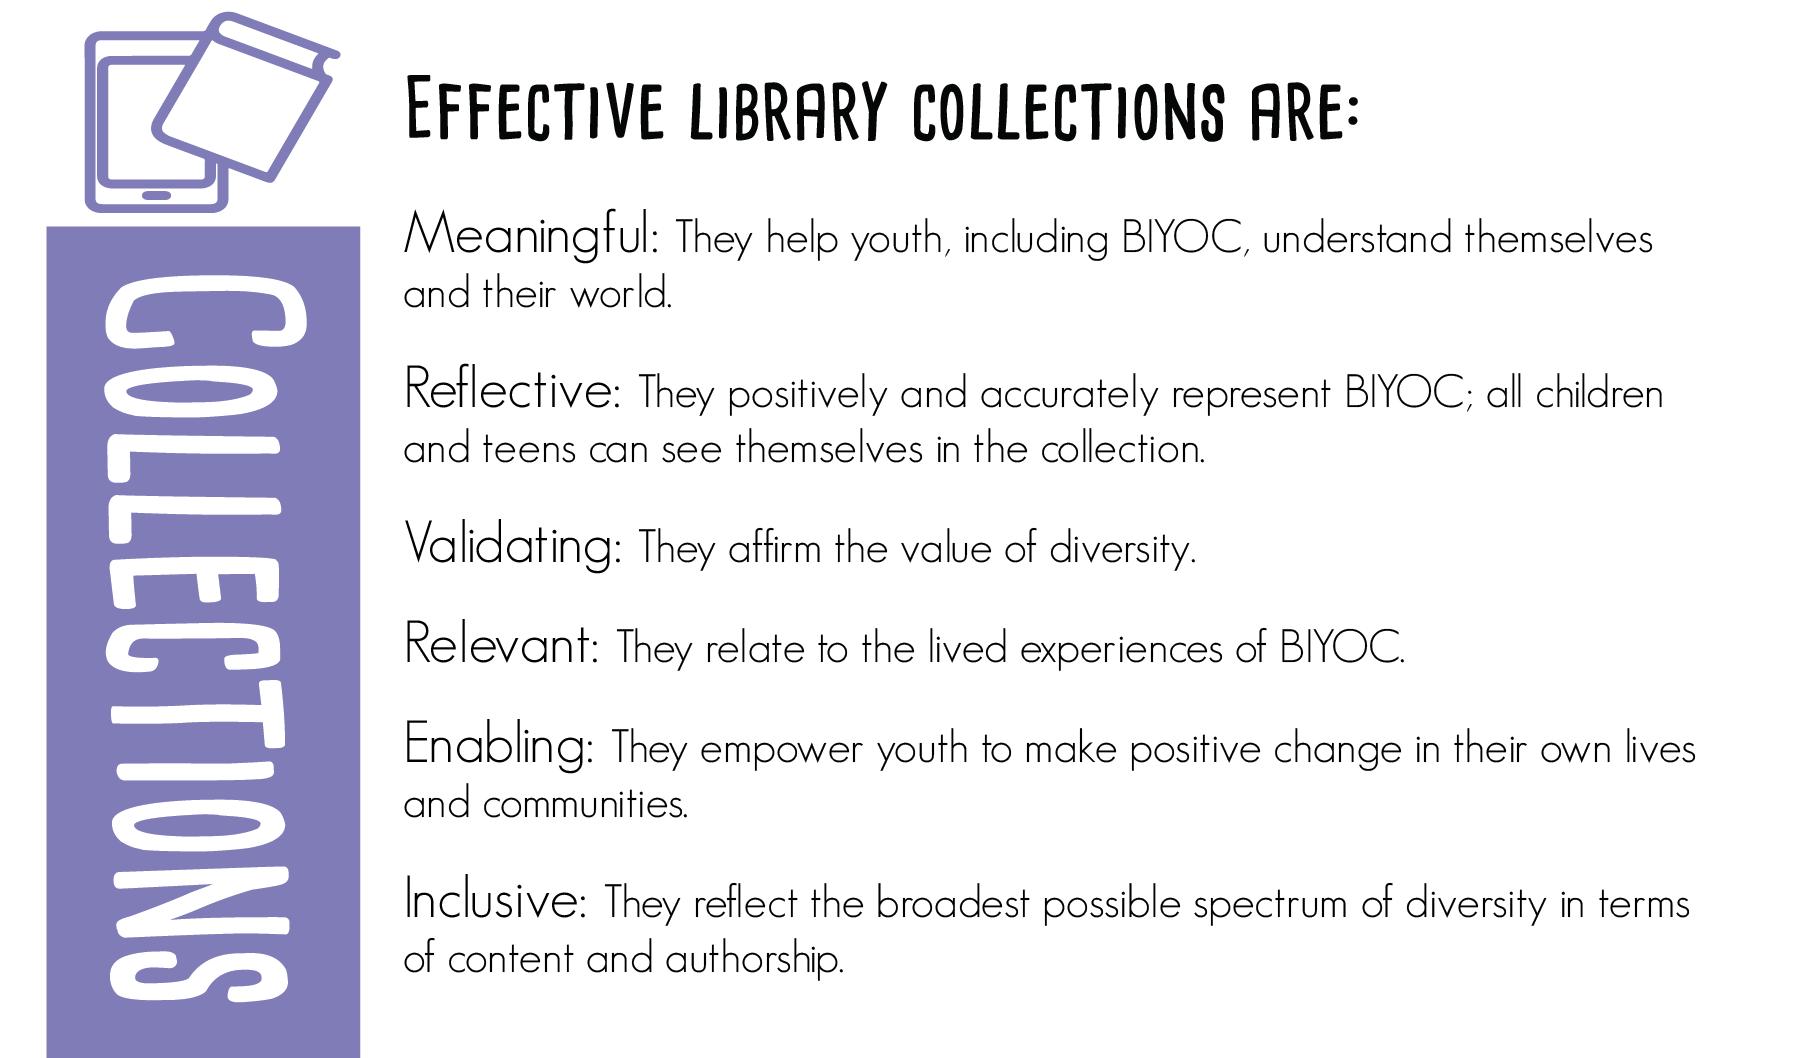 Effective library collections are:  Meaningful: They help BIYOC understand themselves and their world.  Reflective: They positively and accurately represent BIYOC; all youth can see themselves in the collection.  Validating: They affirm the value of diversity.  Relevant: They relate to the lived experiences of BIYOC.  Enabling: They empower youth to make positive change in their own lives and communities.  Inclusive: They reflect the broadest possible spectrum of diversity in terms of content and authorship.